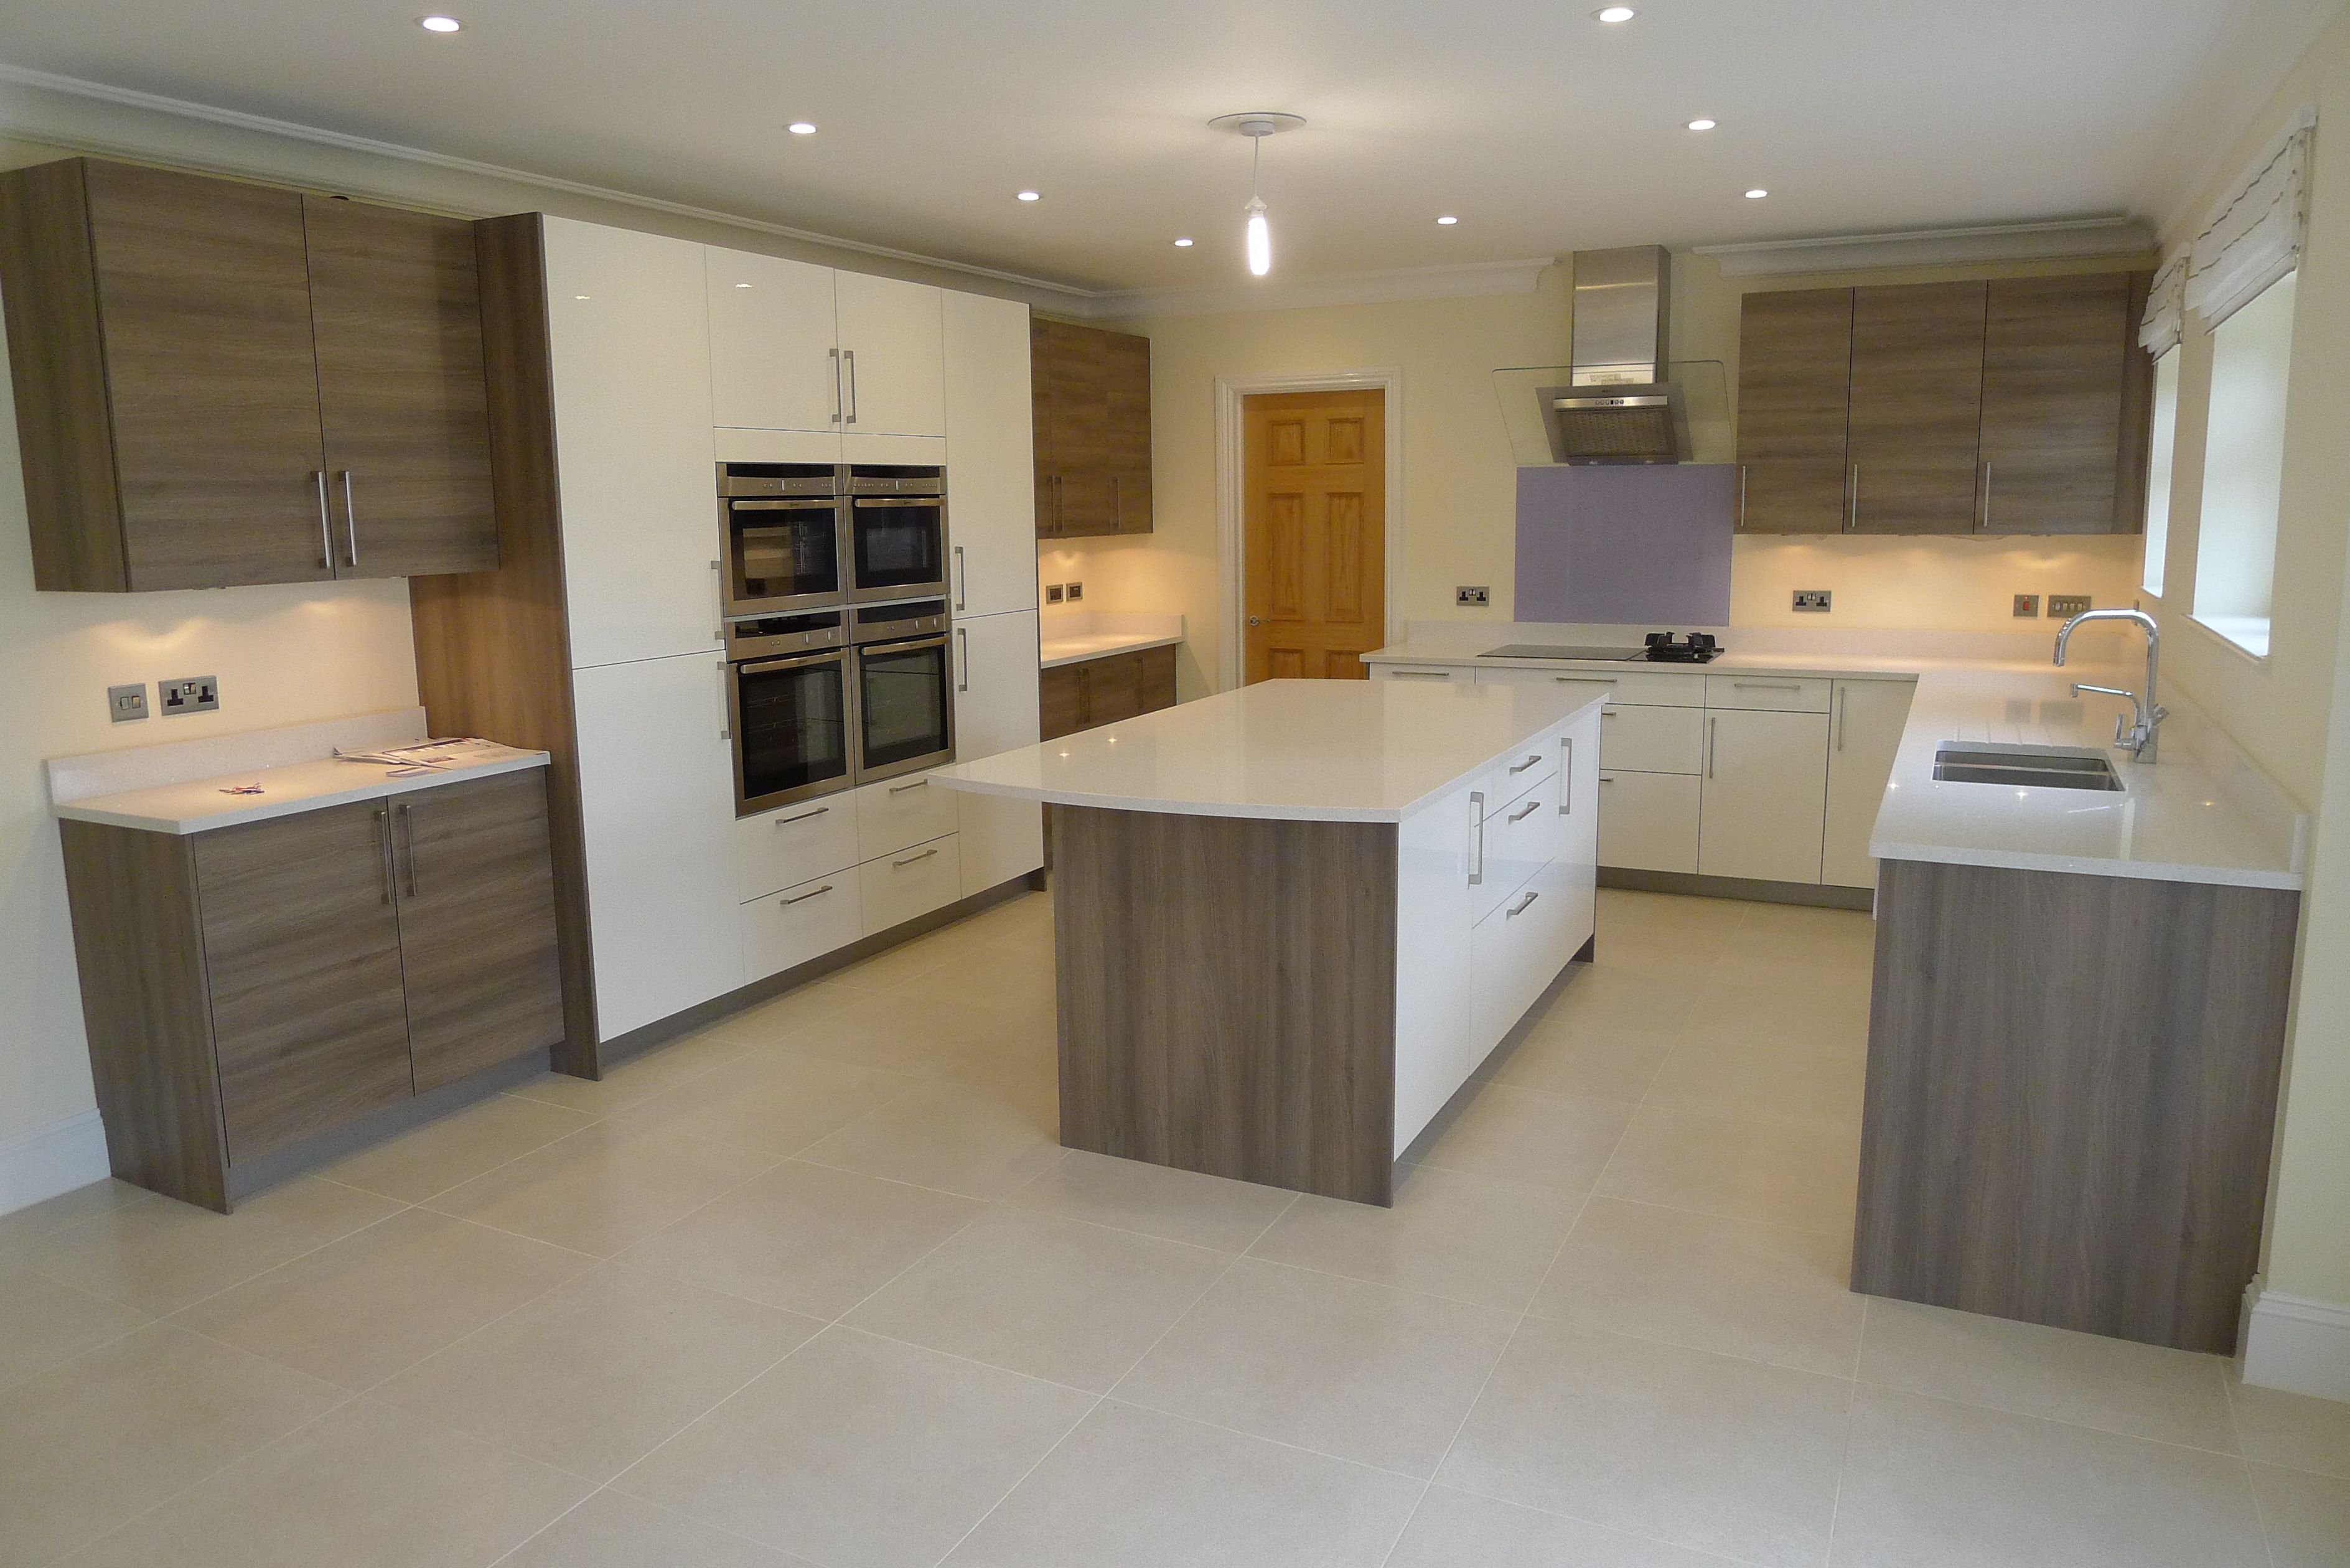 Attractive Gloss Magnolia And Grey Acacia Wood By Hacker At The Kitchen Company,  Uxbridge